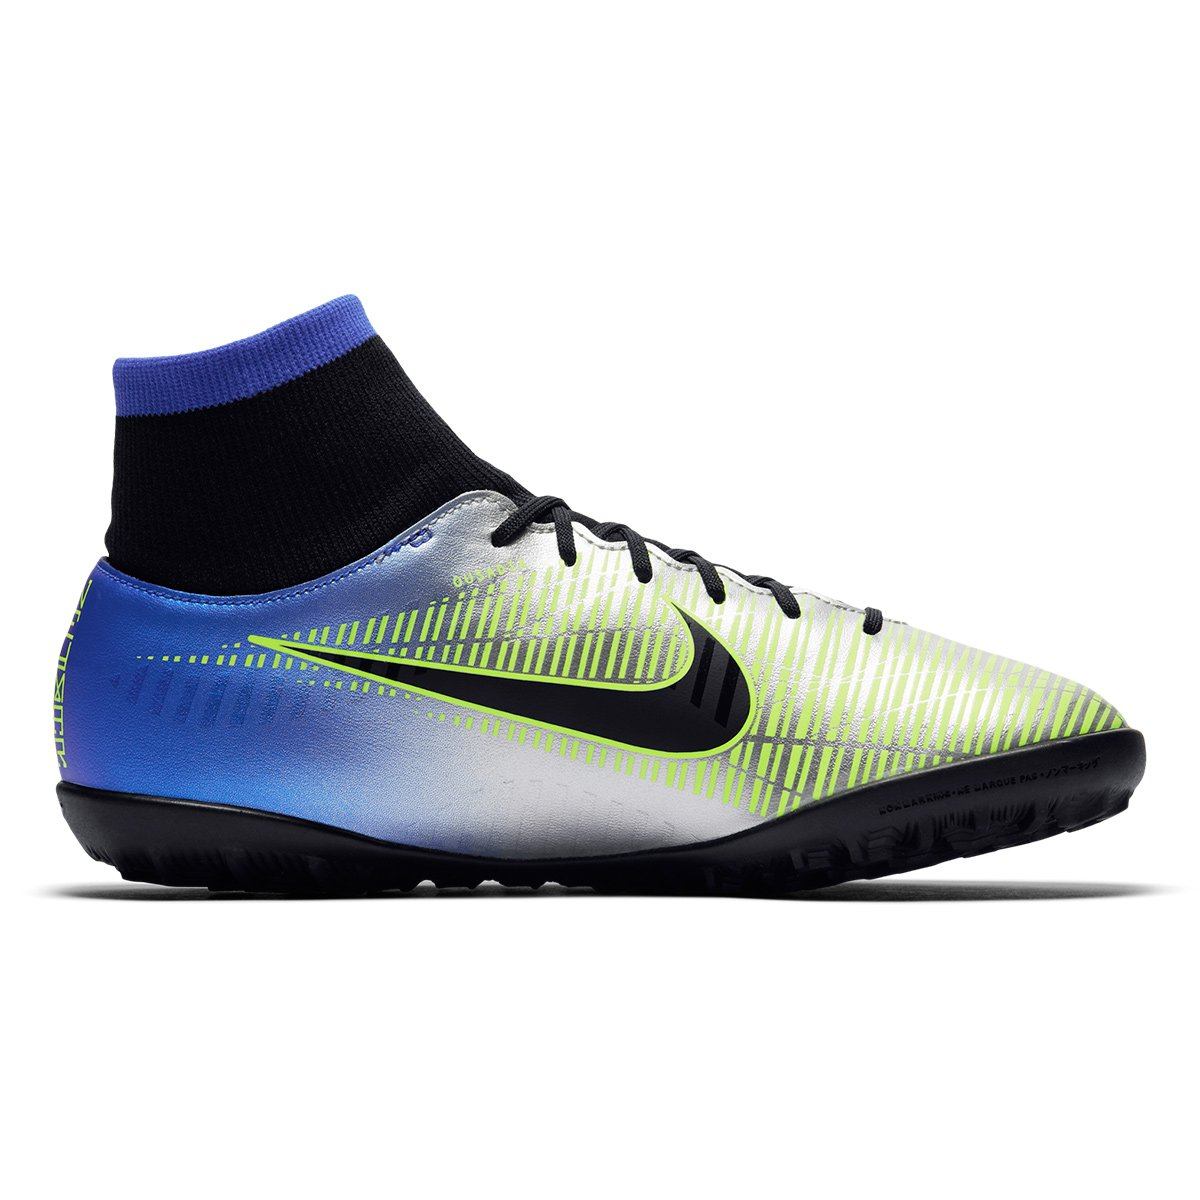 430f365175 Chuteira Society Infantil Nike Mercurial Victory 6 DF NJR TF - Compre Agora